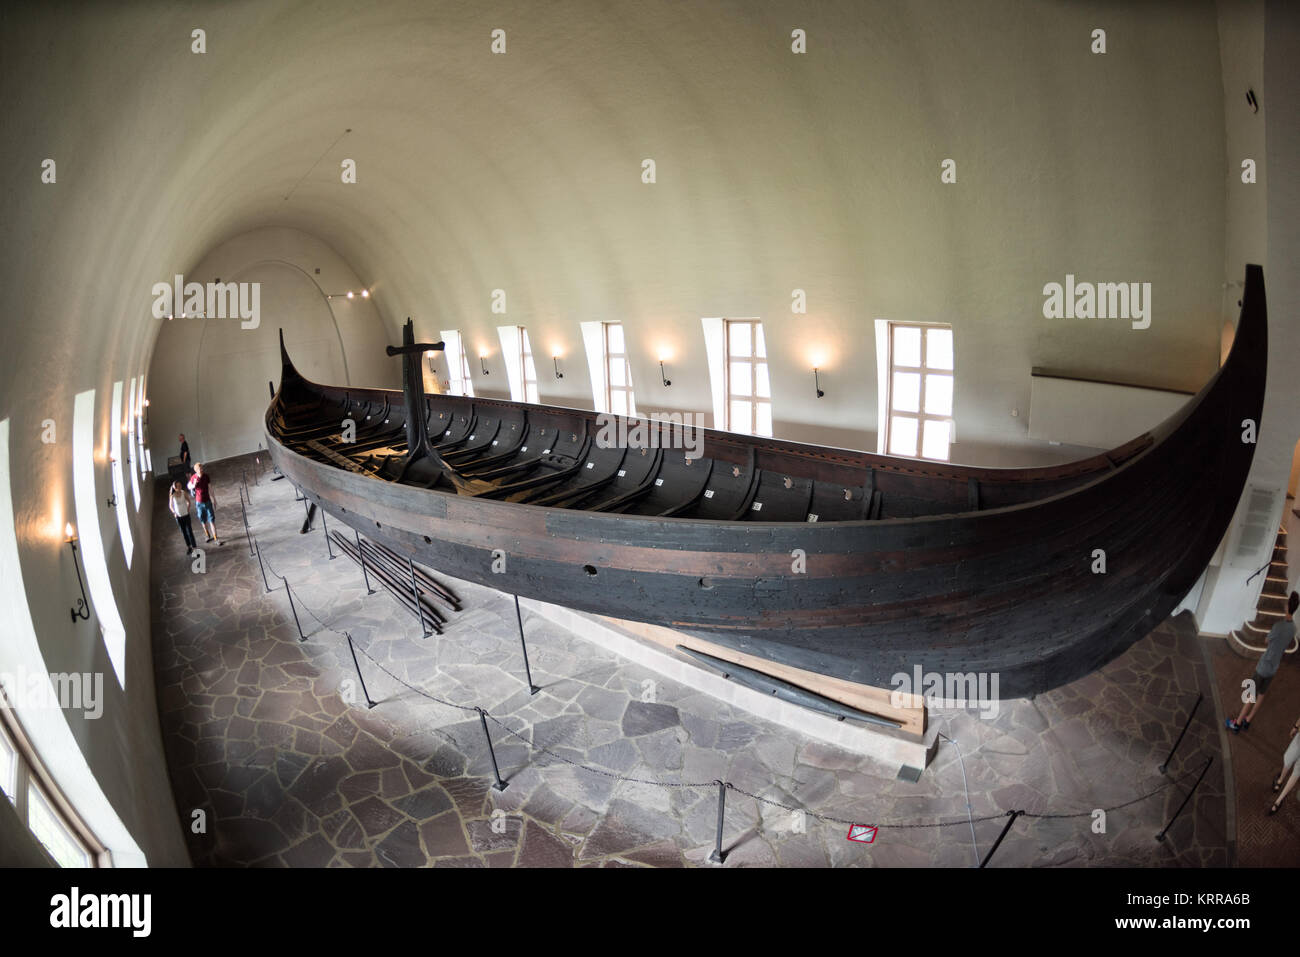 OSLO, Norway - The Gokstad Ship is the largest of the Viking ships on display at the Viking Ship Museum in Oslo, - Stock Image